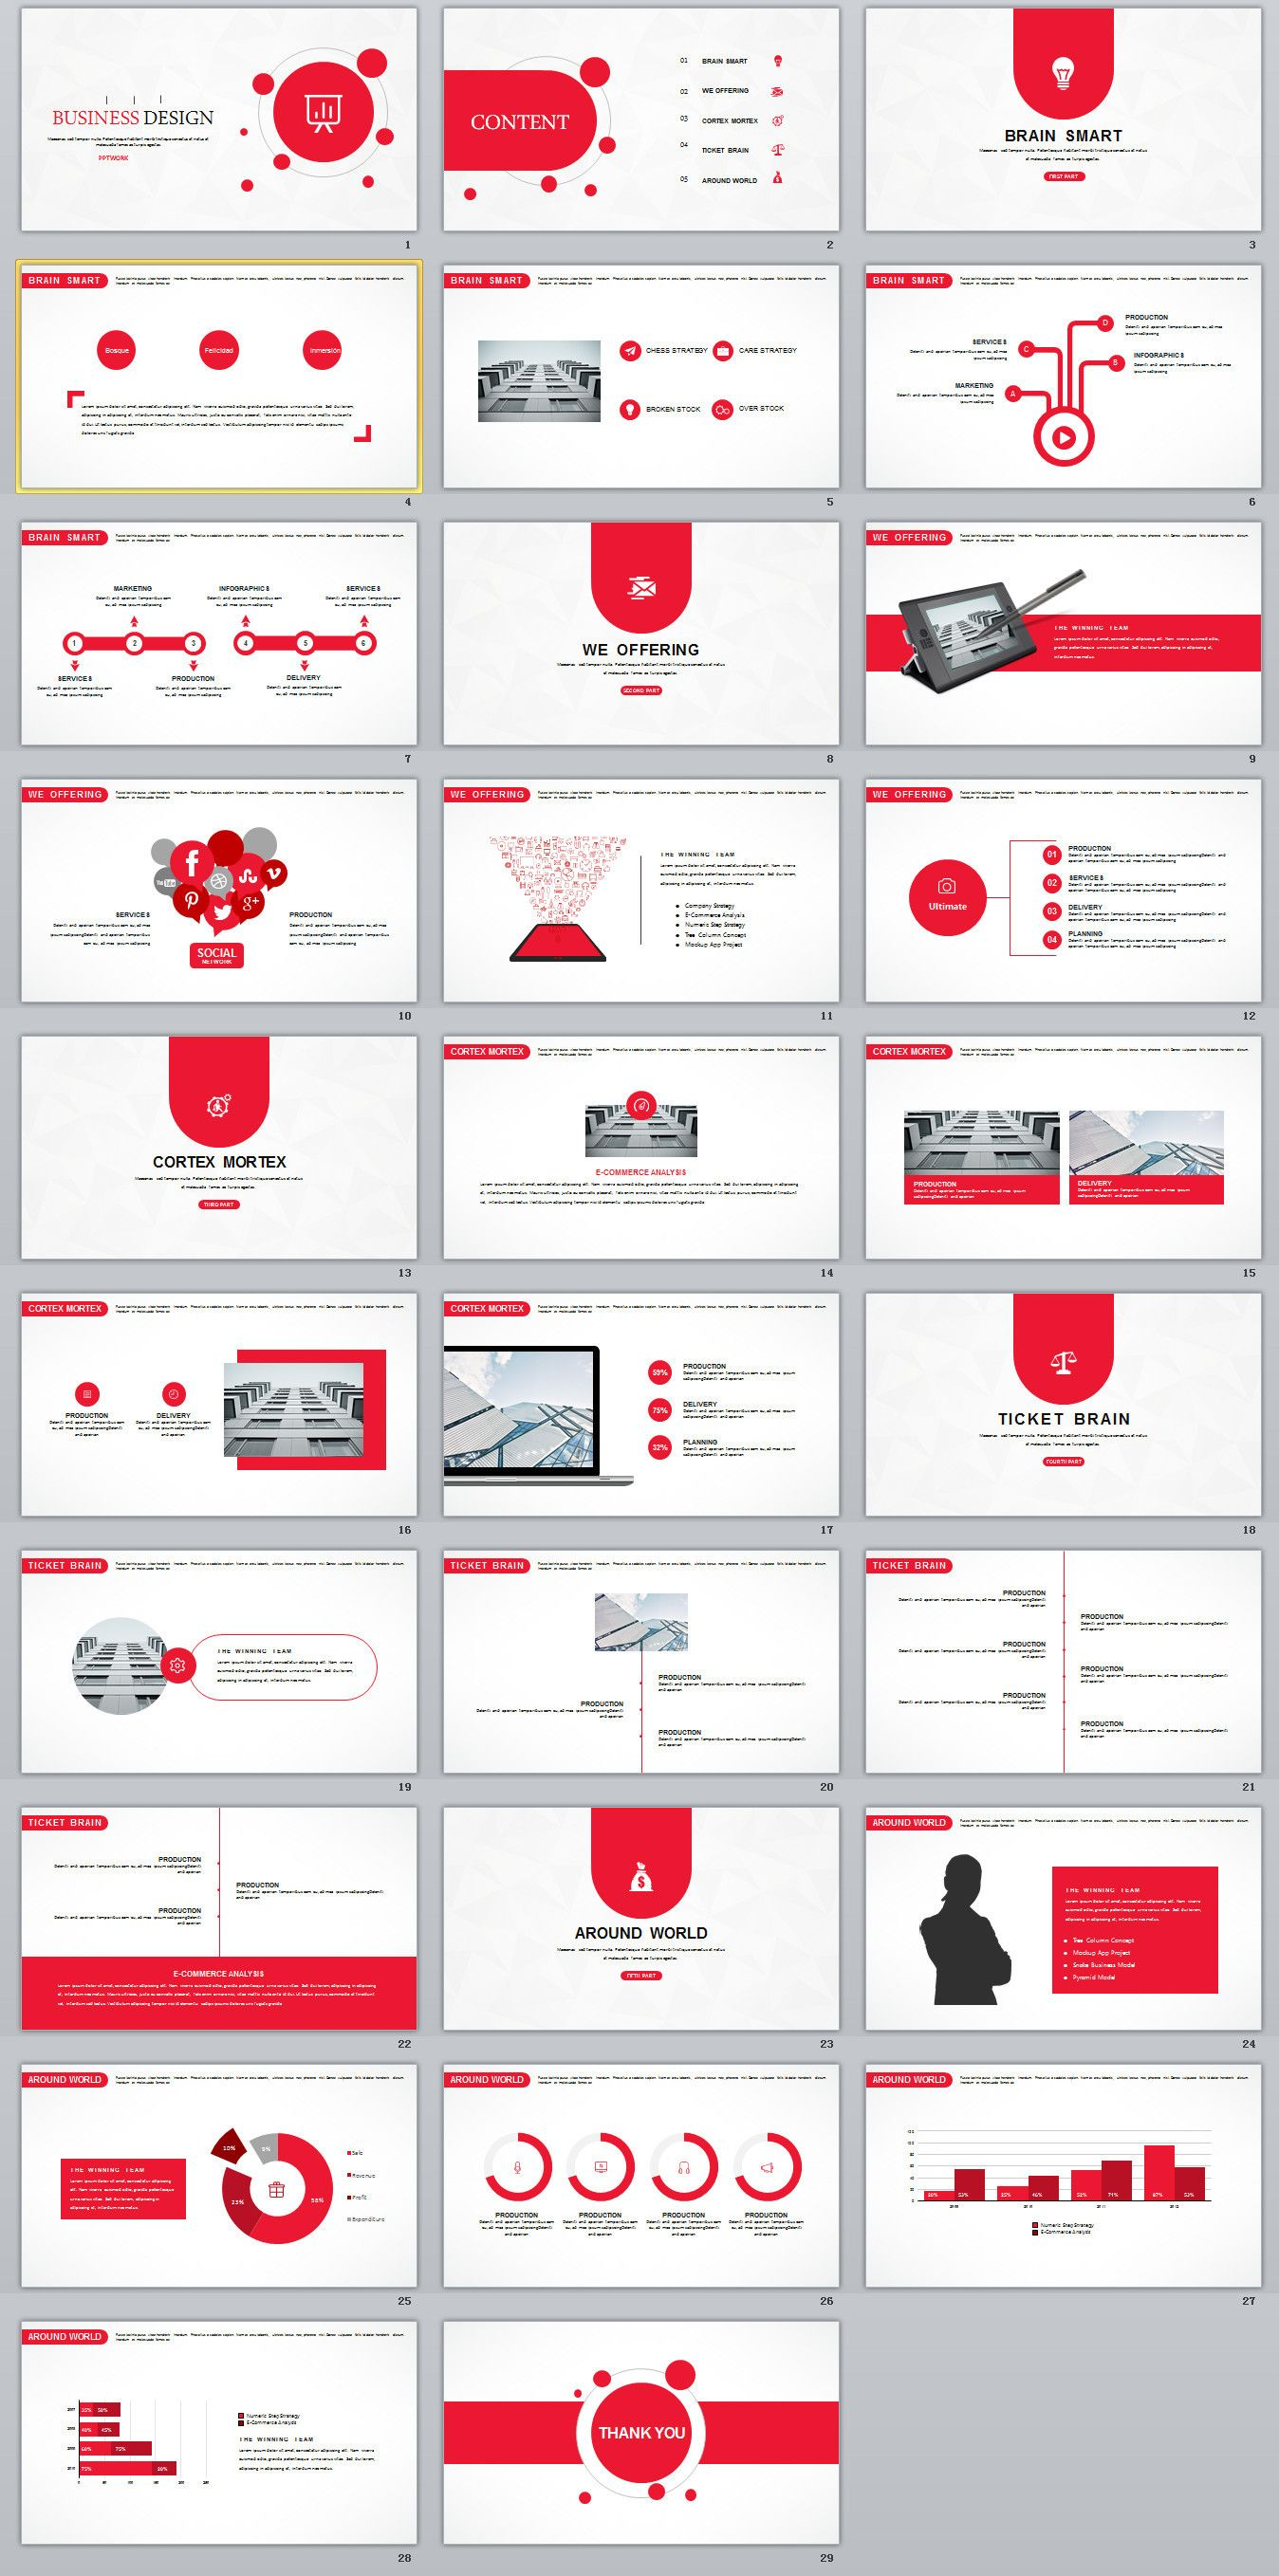 29 red creative business design powerpoint template powerpoint 29 red creative business design powerpoint template powerpoint templates presentation animation backgrounds pptwork annual report business toneelgroepblik Images